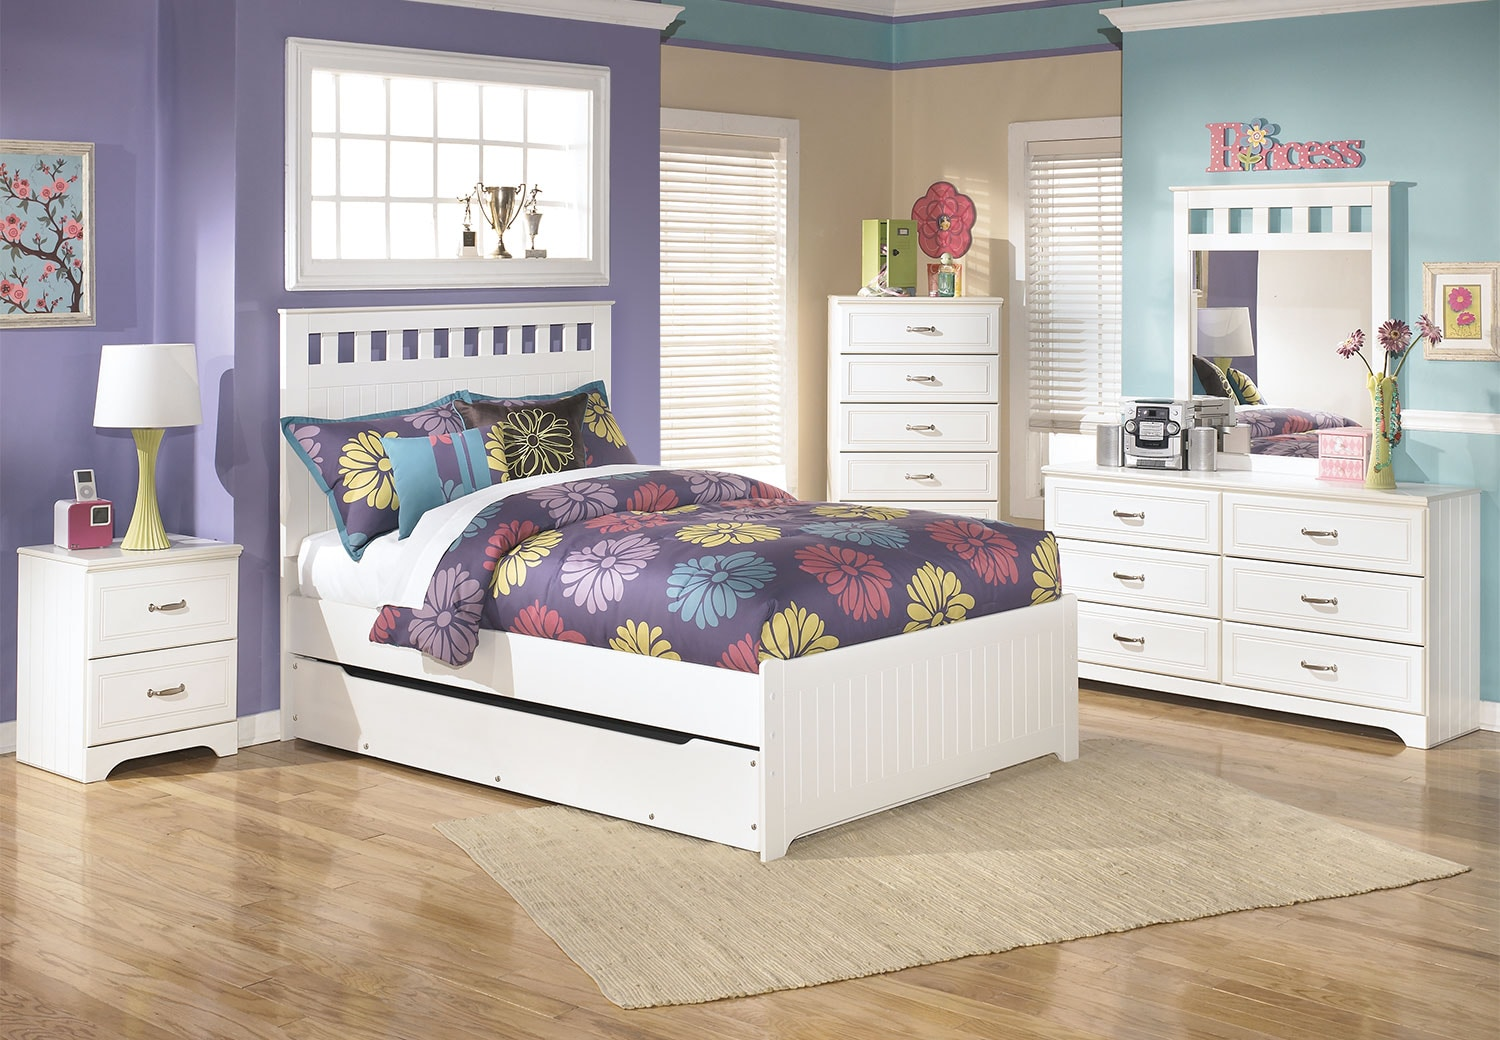 Kids Furniture - Lulu 7-Piece Full Panel Bed Package with Trundle